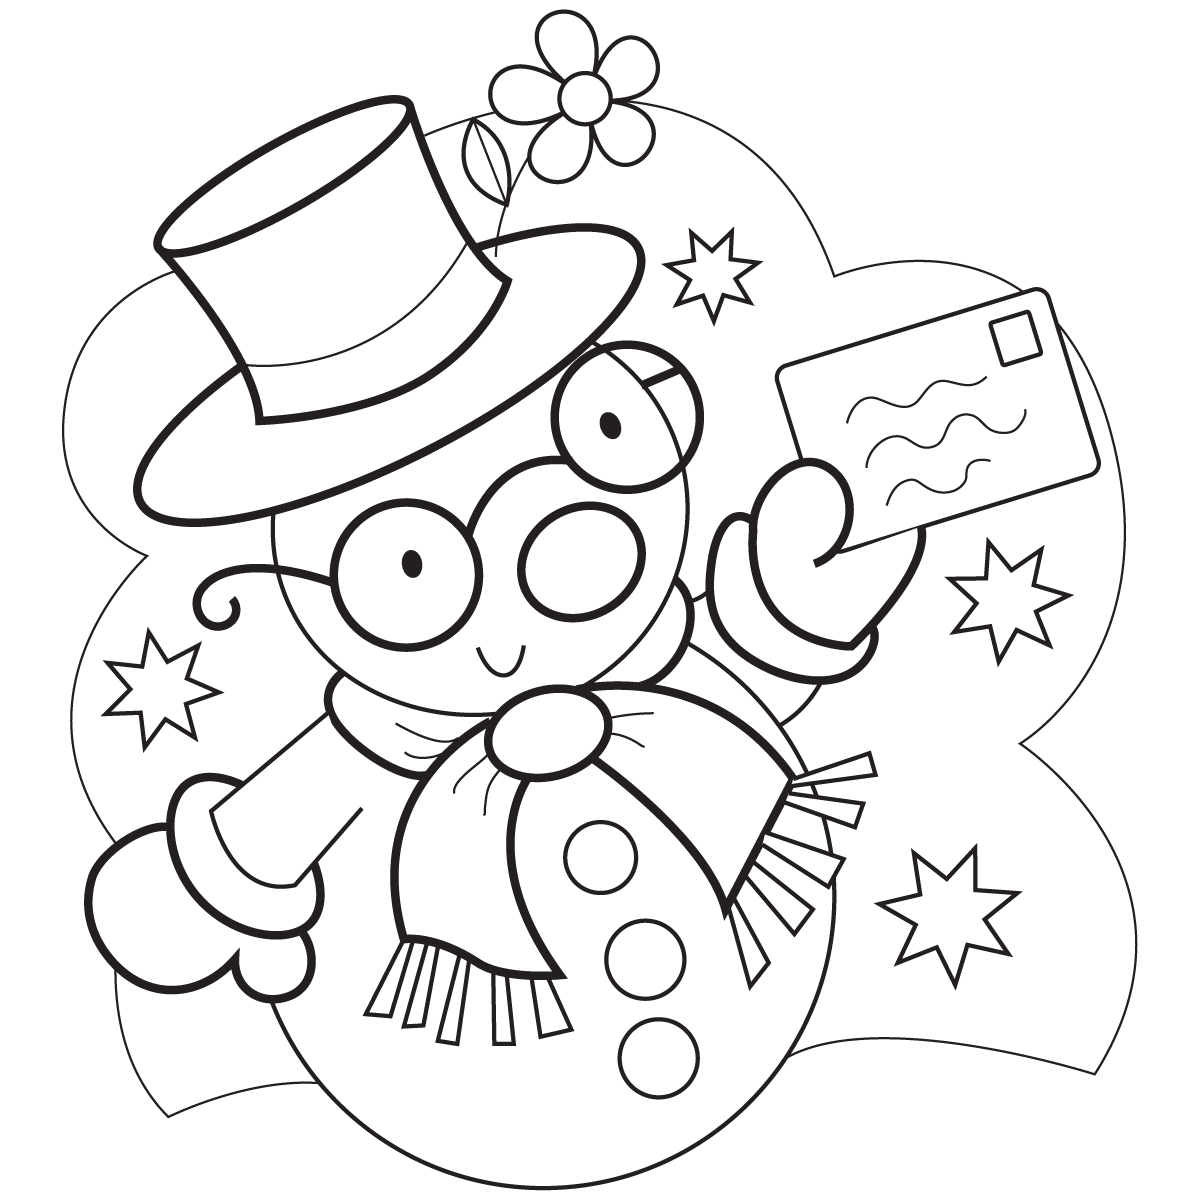 snowman hat coloring page - pictures of snowman hats new calendar template site